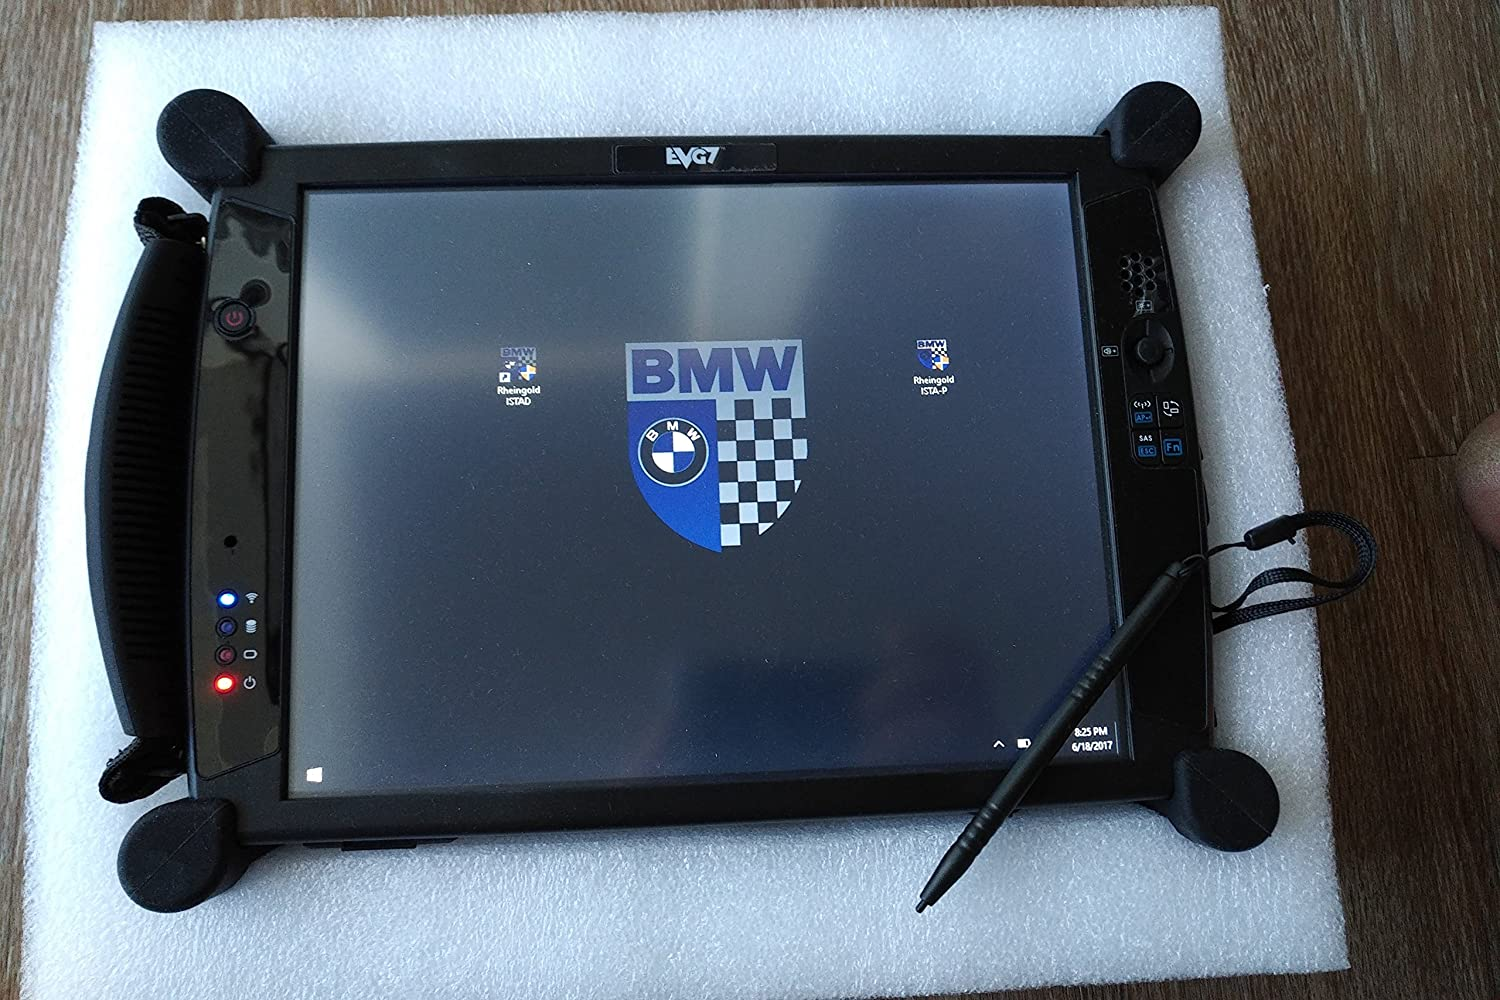 The Ultimate Rheingold Ista D P Icom A Tablet Bmw Wiring Diagrams System Car Electronics